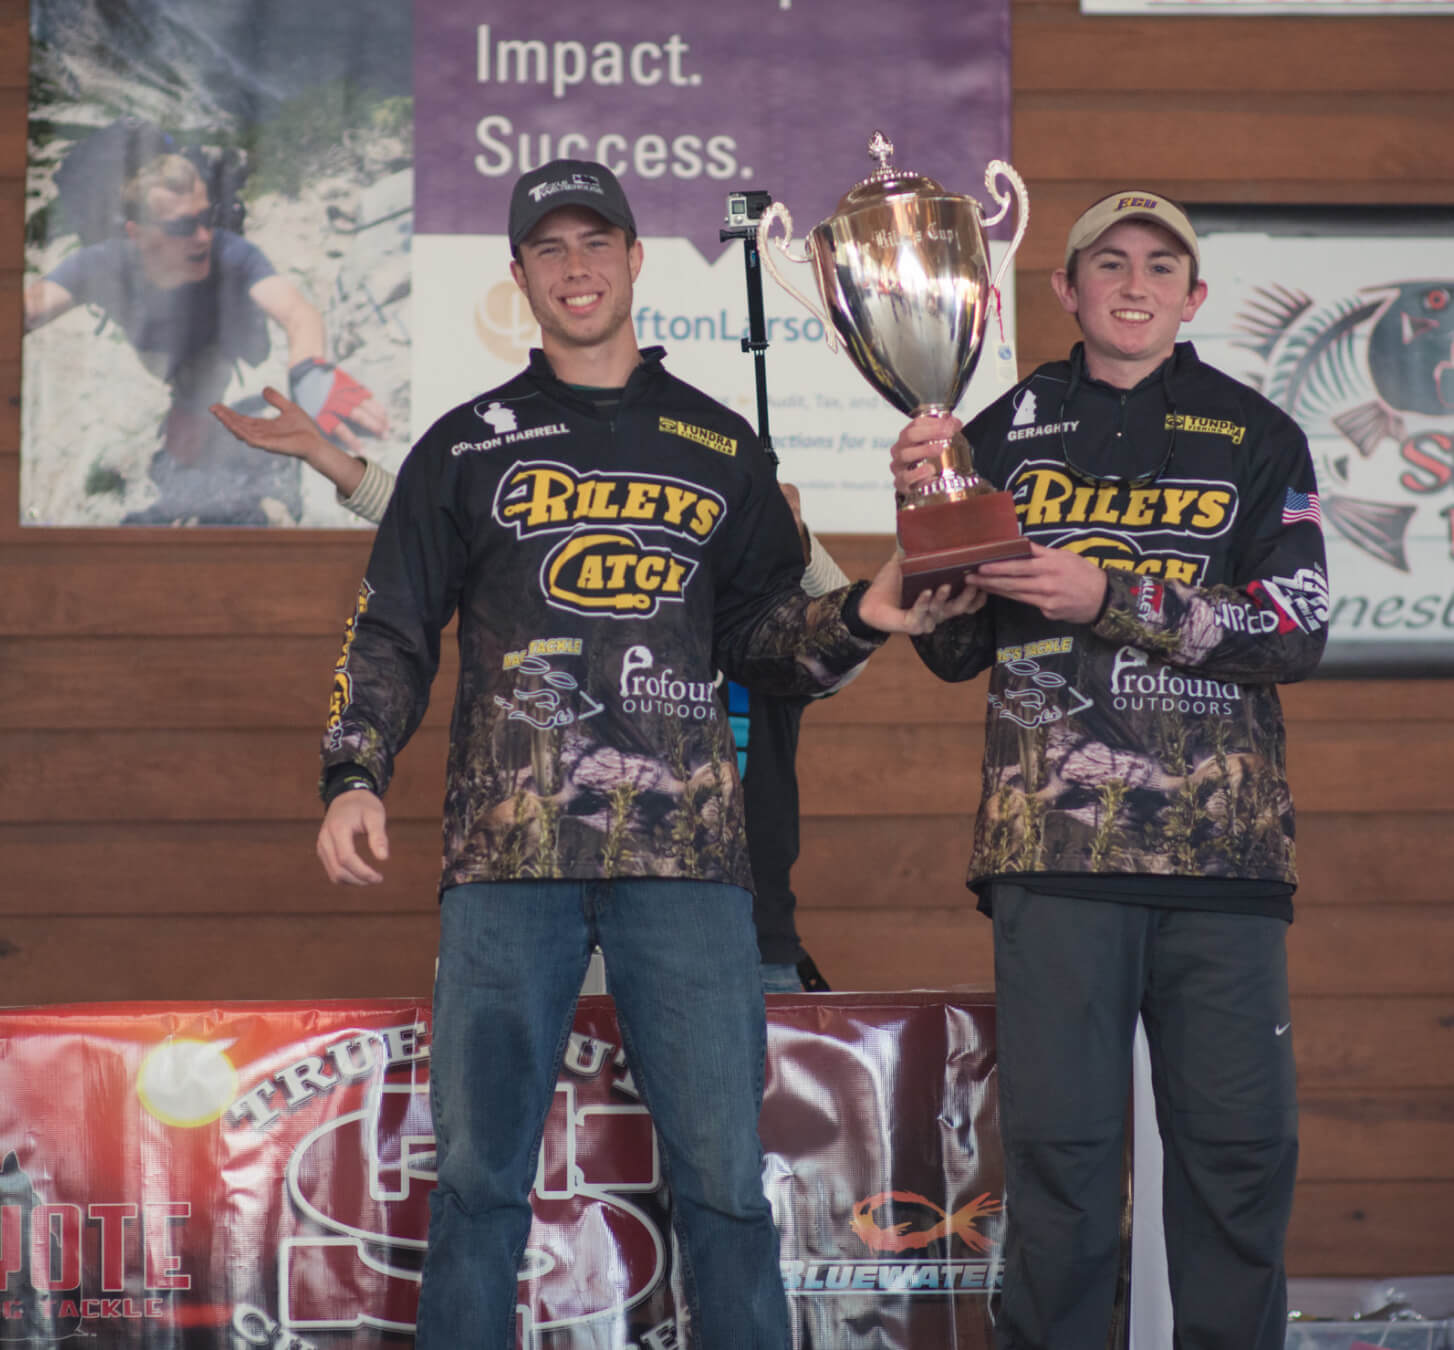 Riley's Catch team members holding up a trophy.